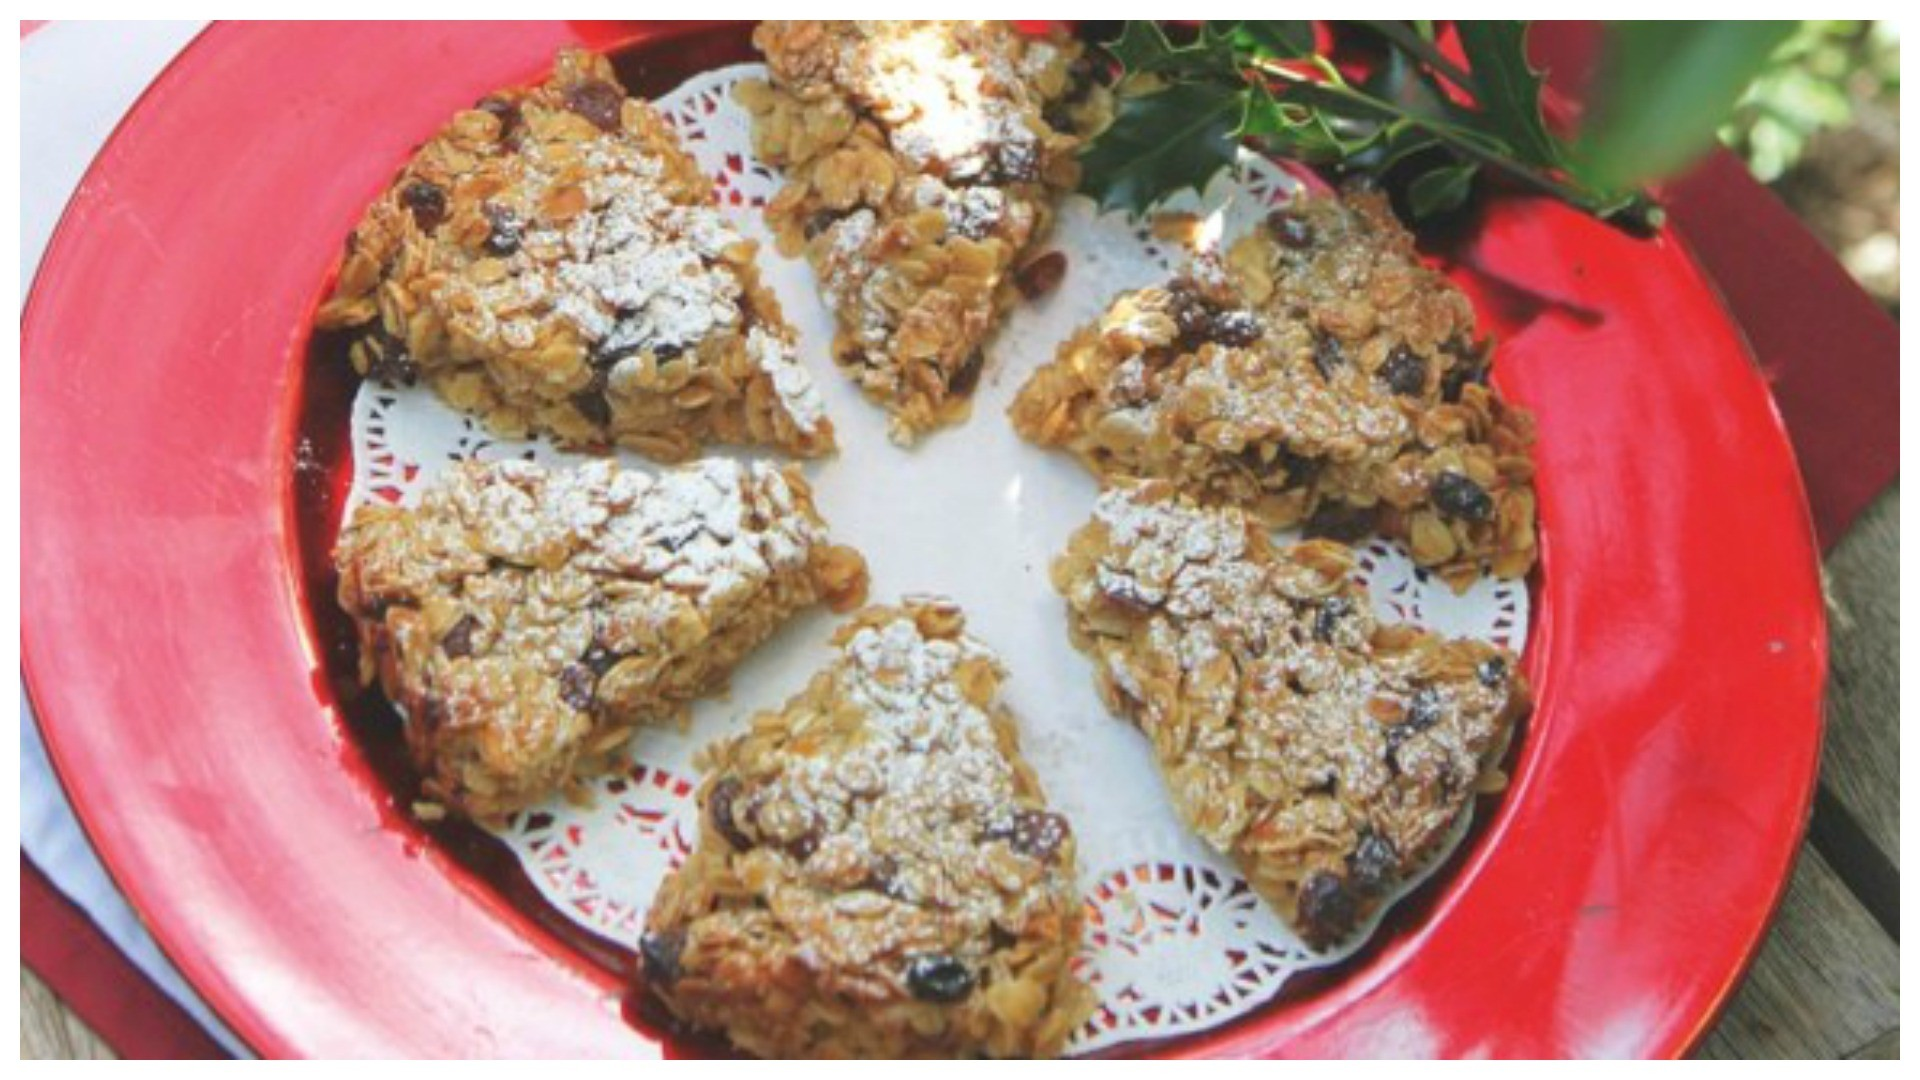 Mincemeat, orange and festive cheer